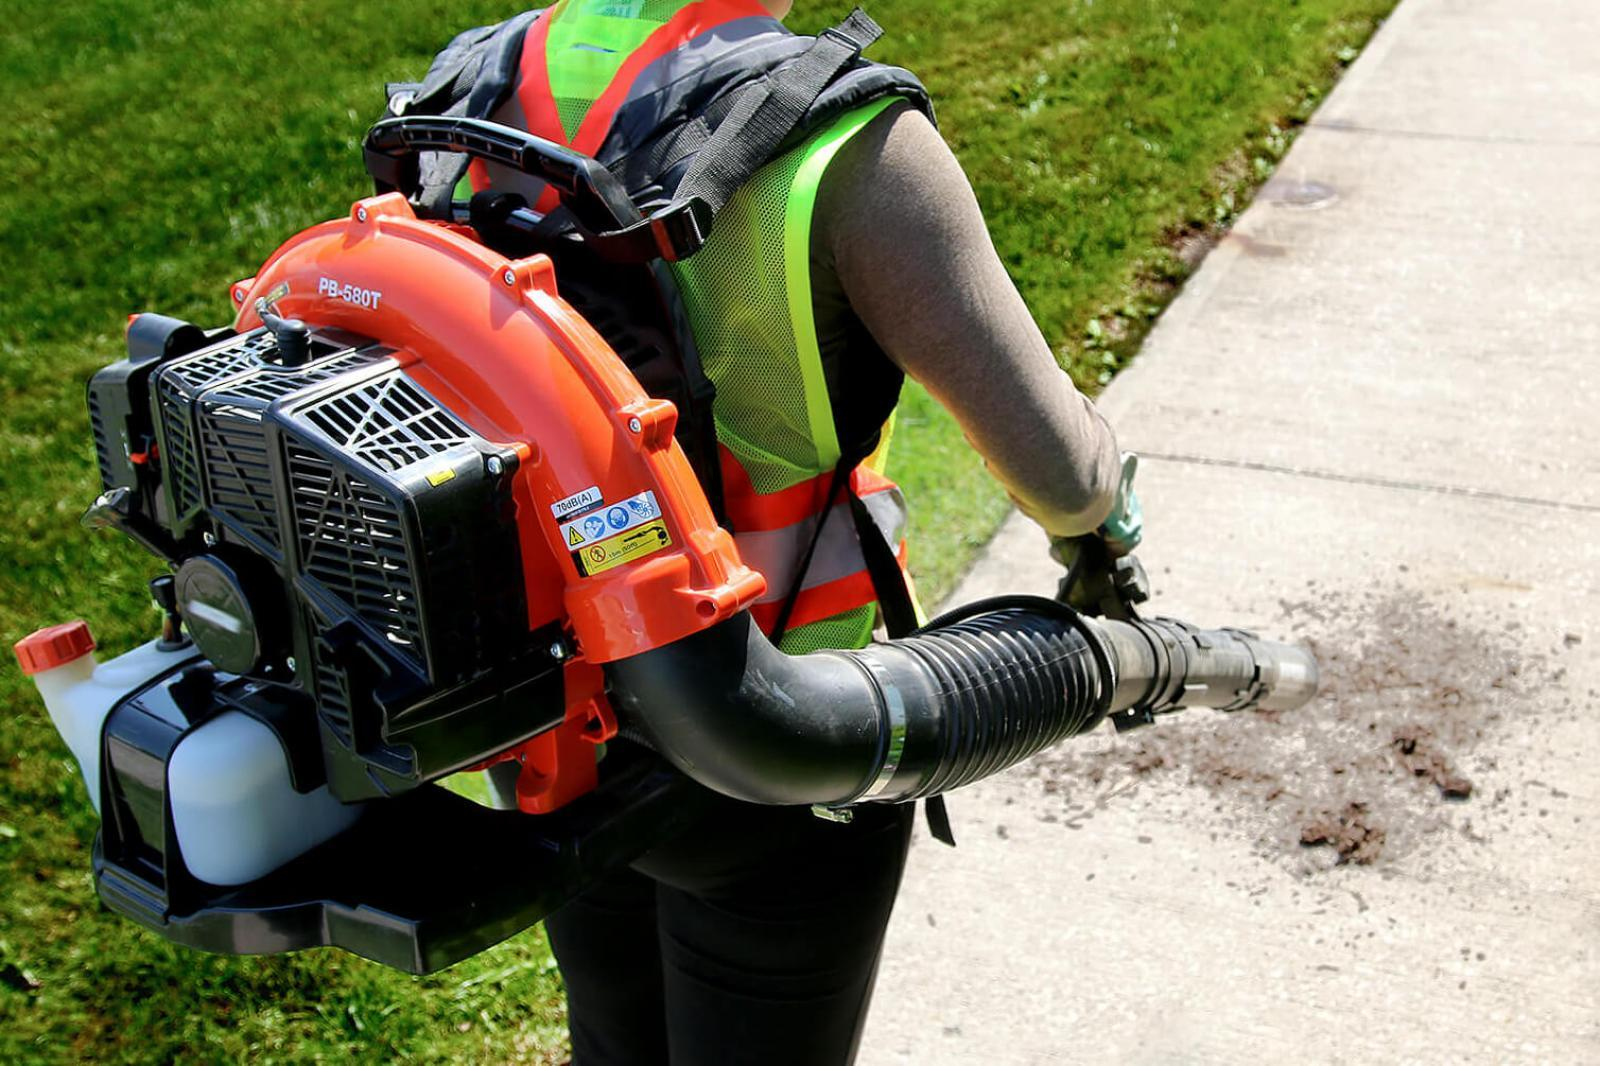 Leaf blower best practices video